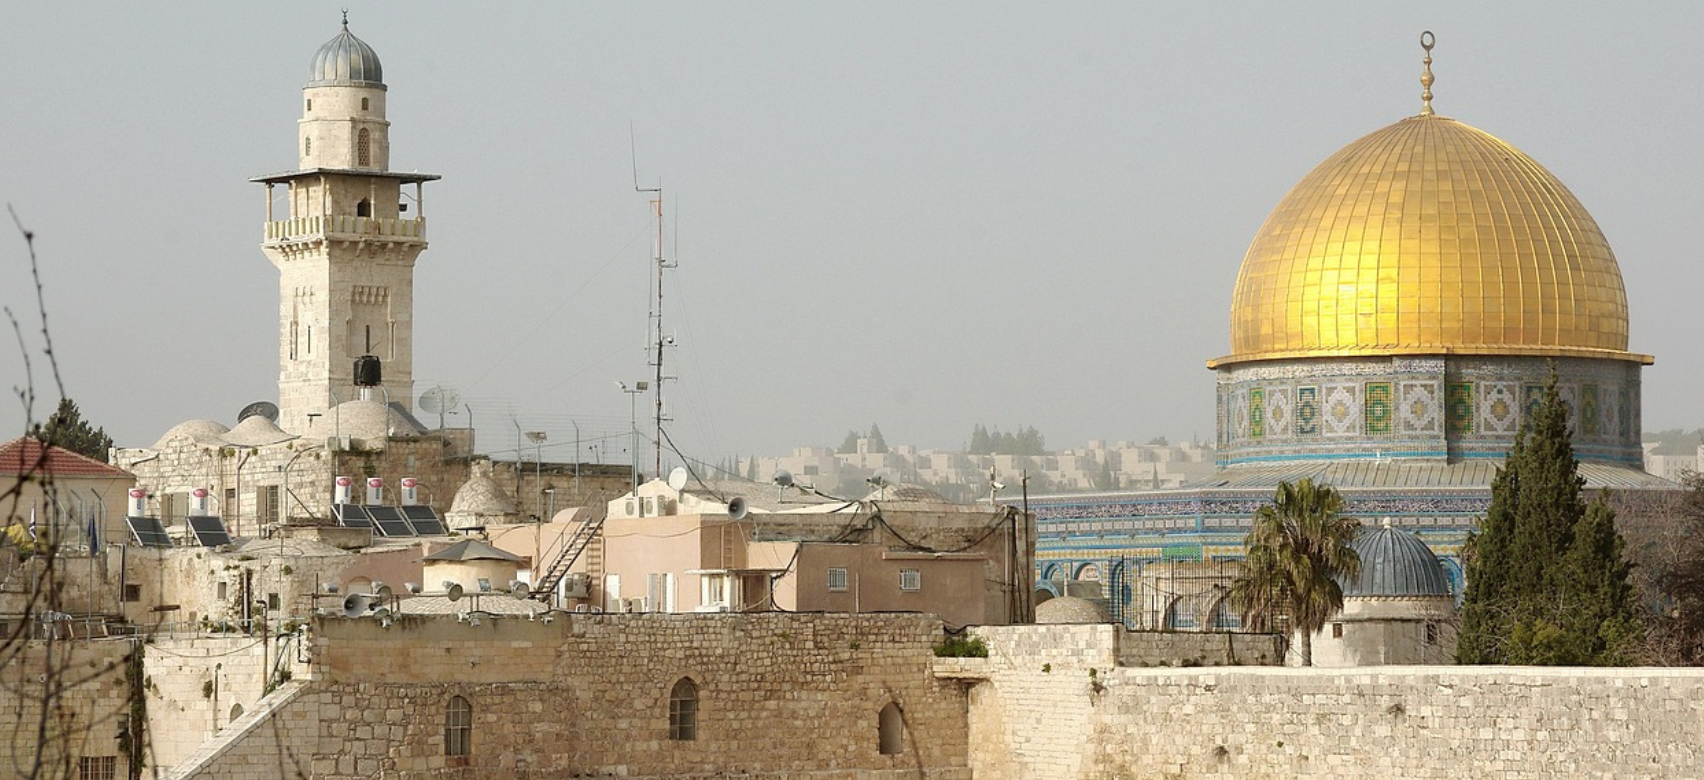 Palestine: What is the situation of tourism?